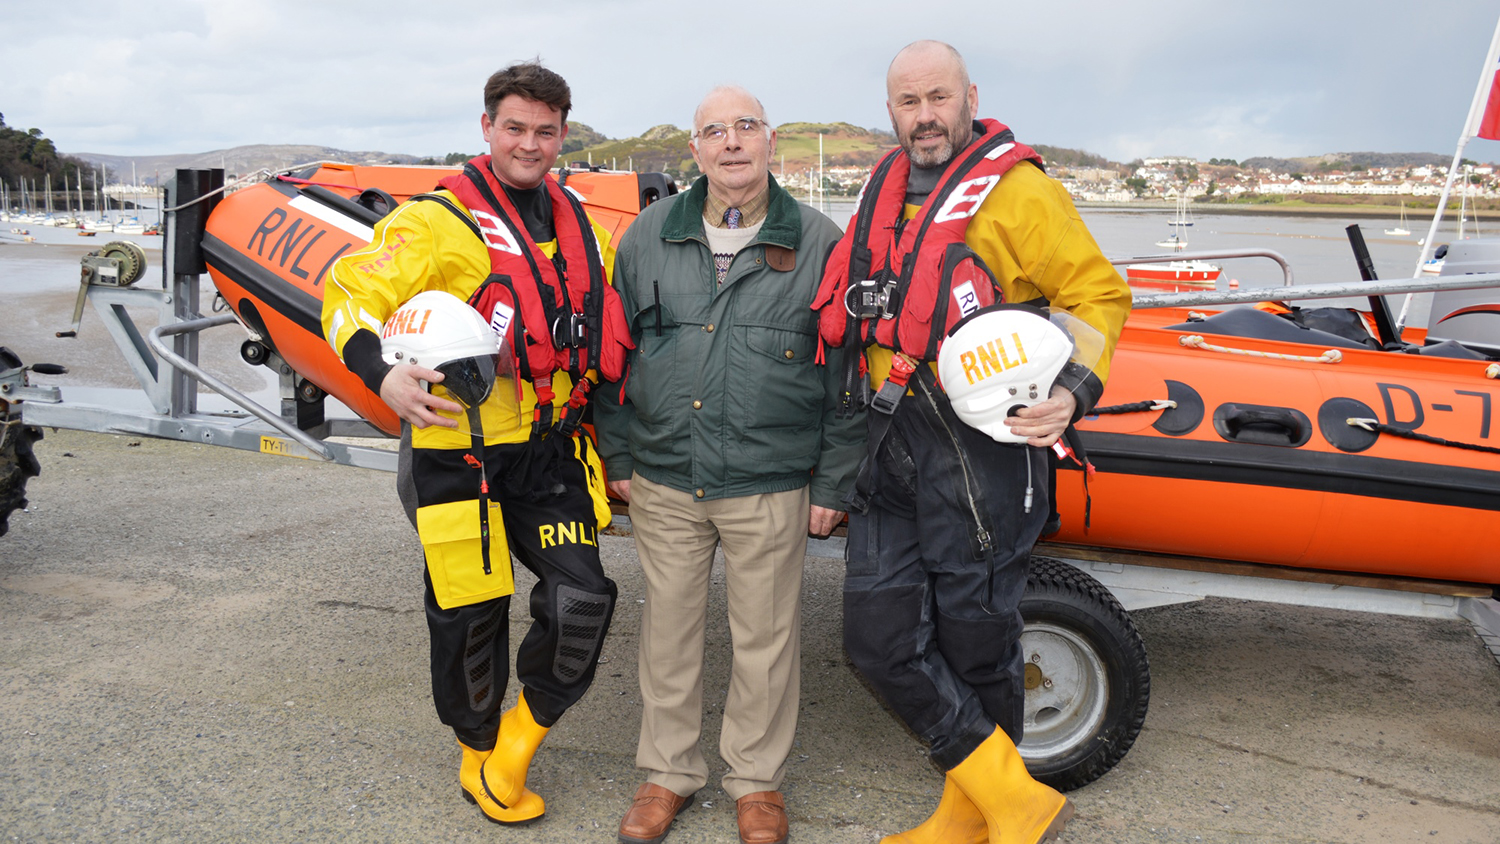 David Stocks with two of his rescuers: Conwy lifeboat Crew Members Greg Donald (left) and Peter Hughes (right)